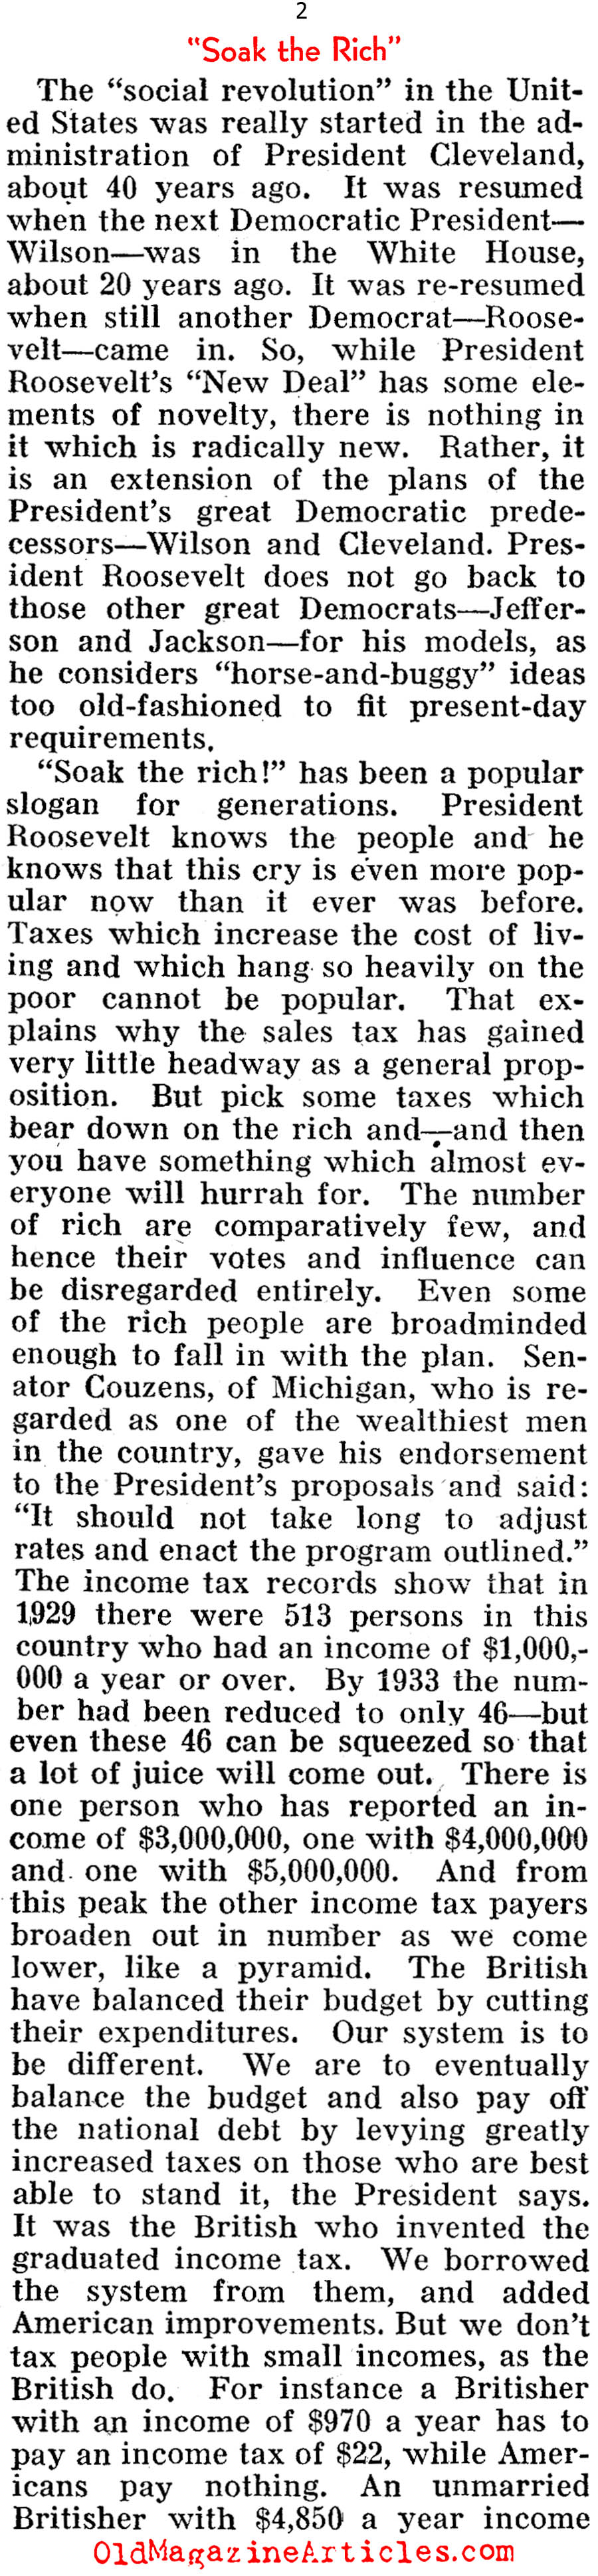 ''Soak the Rich'' (Pathfinder Magazine, 1935)